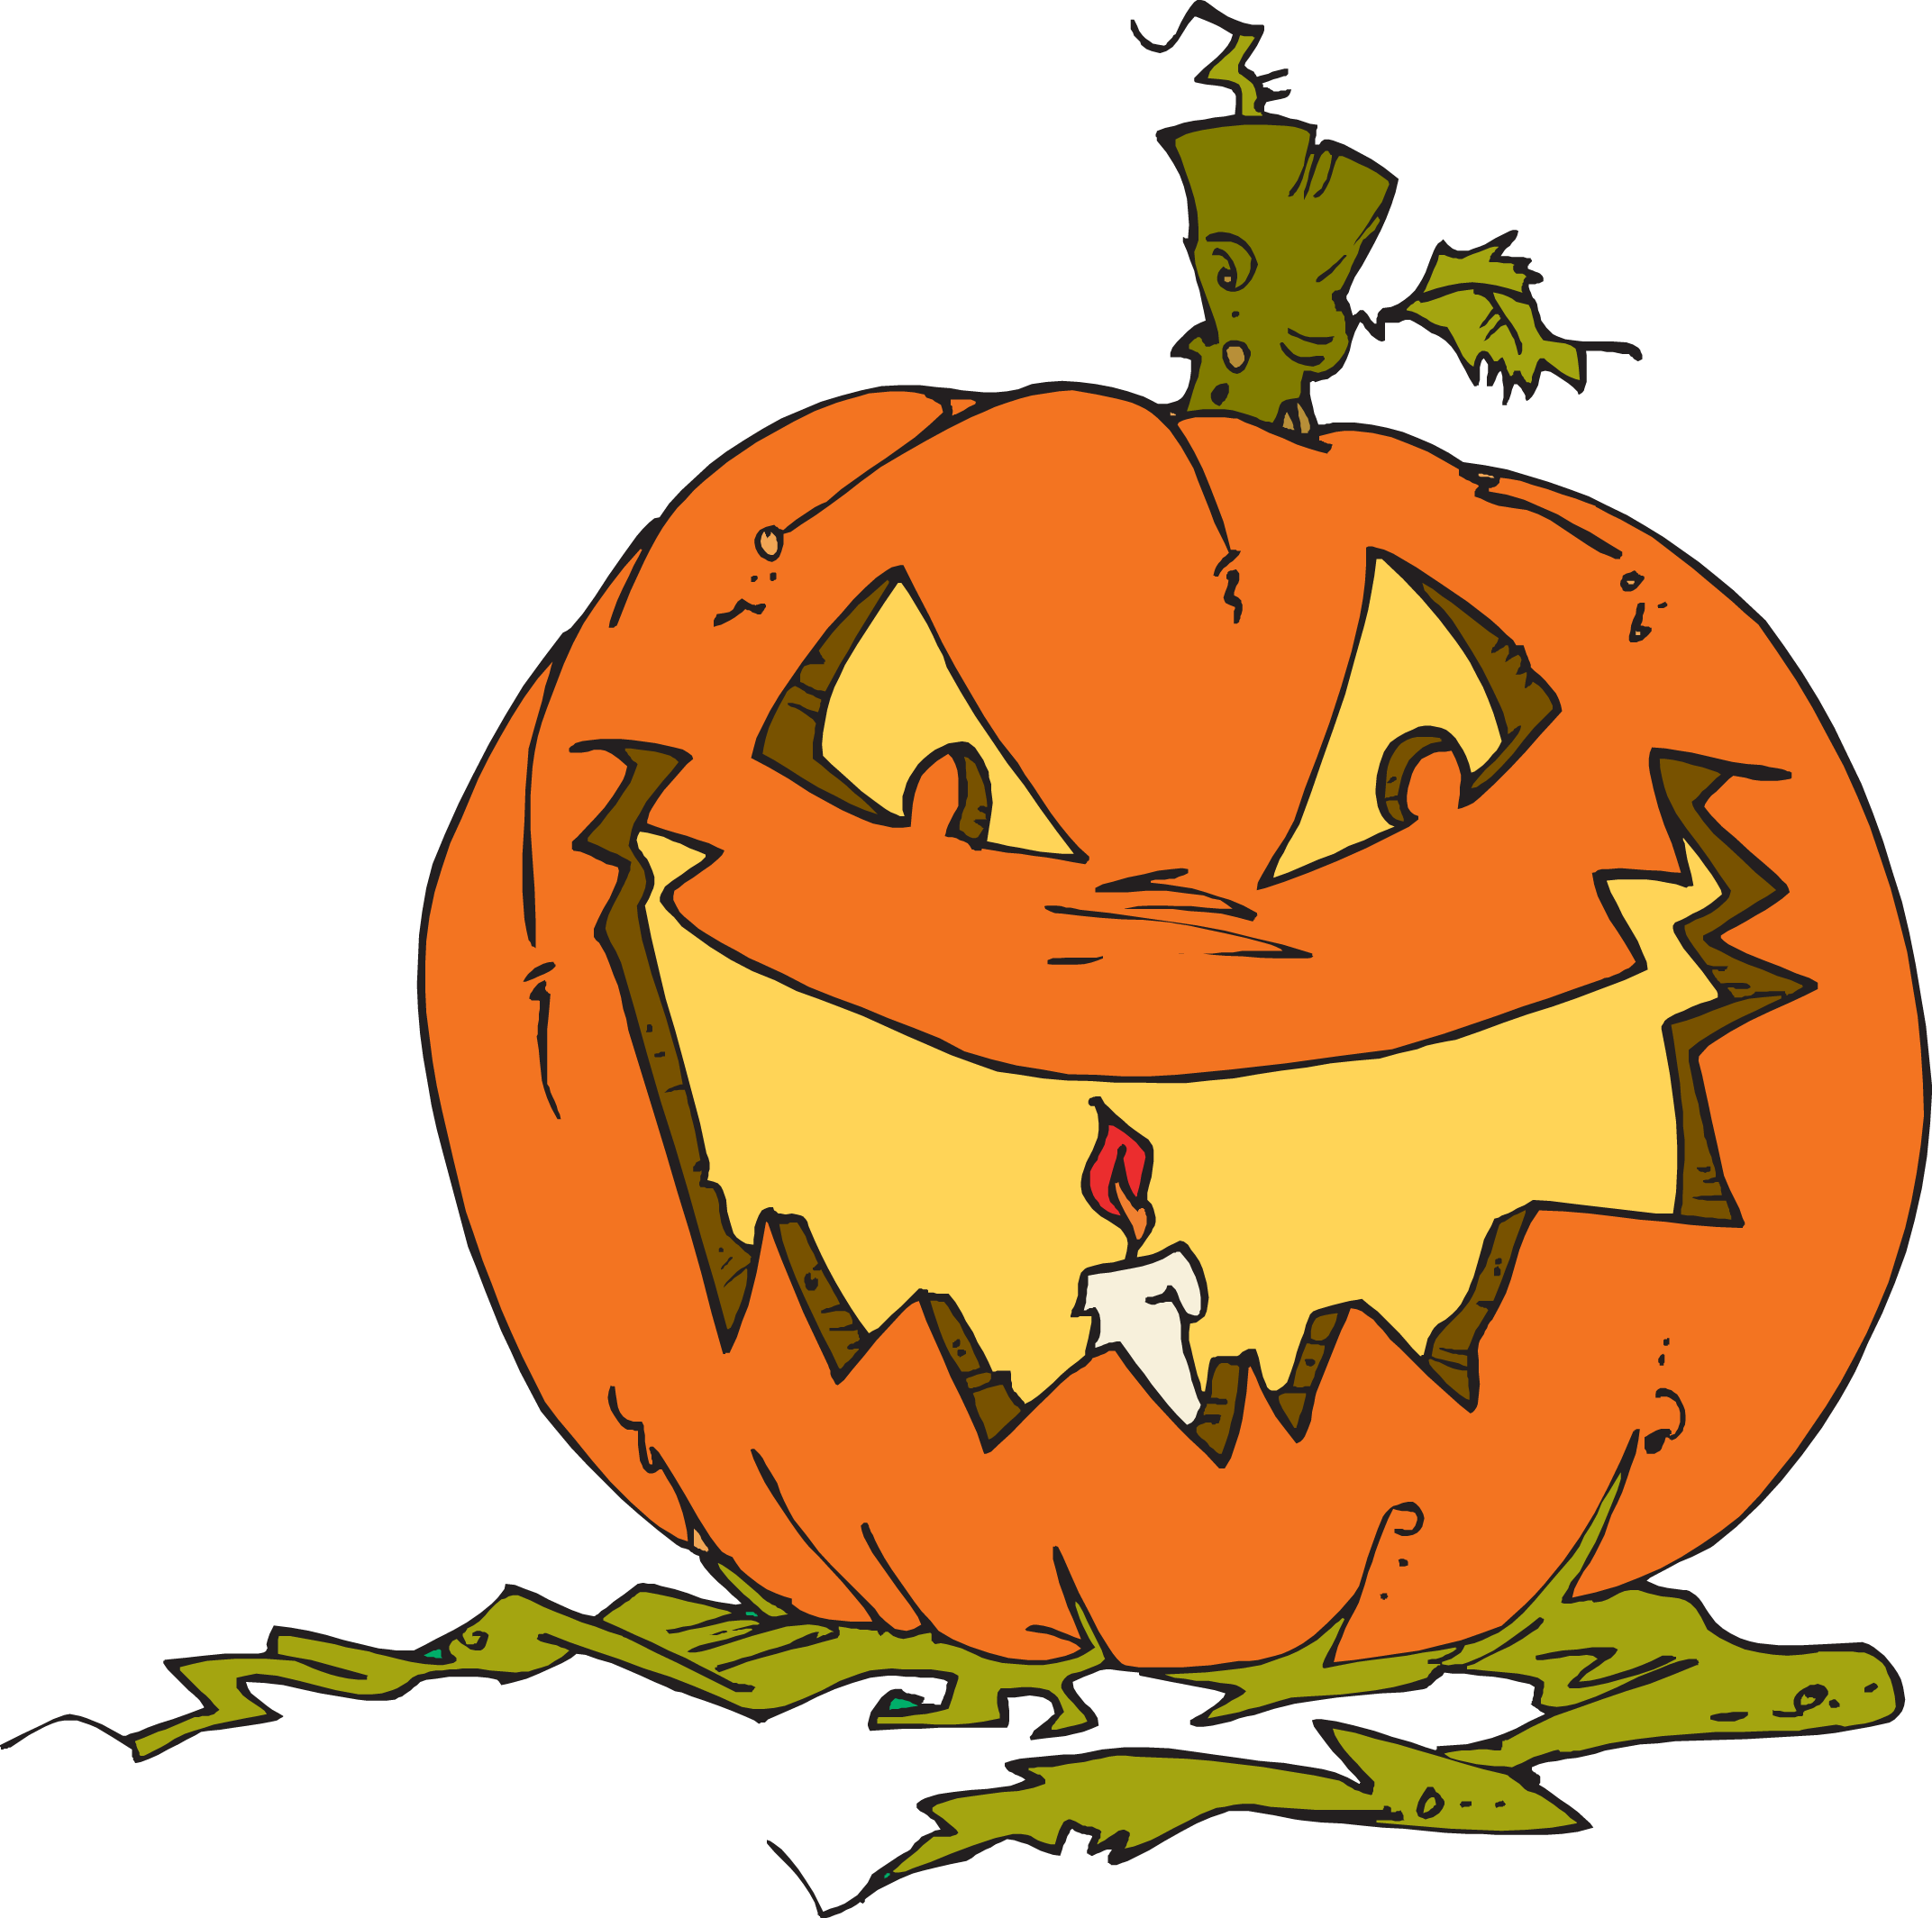 happy%20jack%20o%20lantern%20clipart